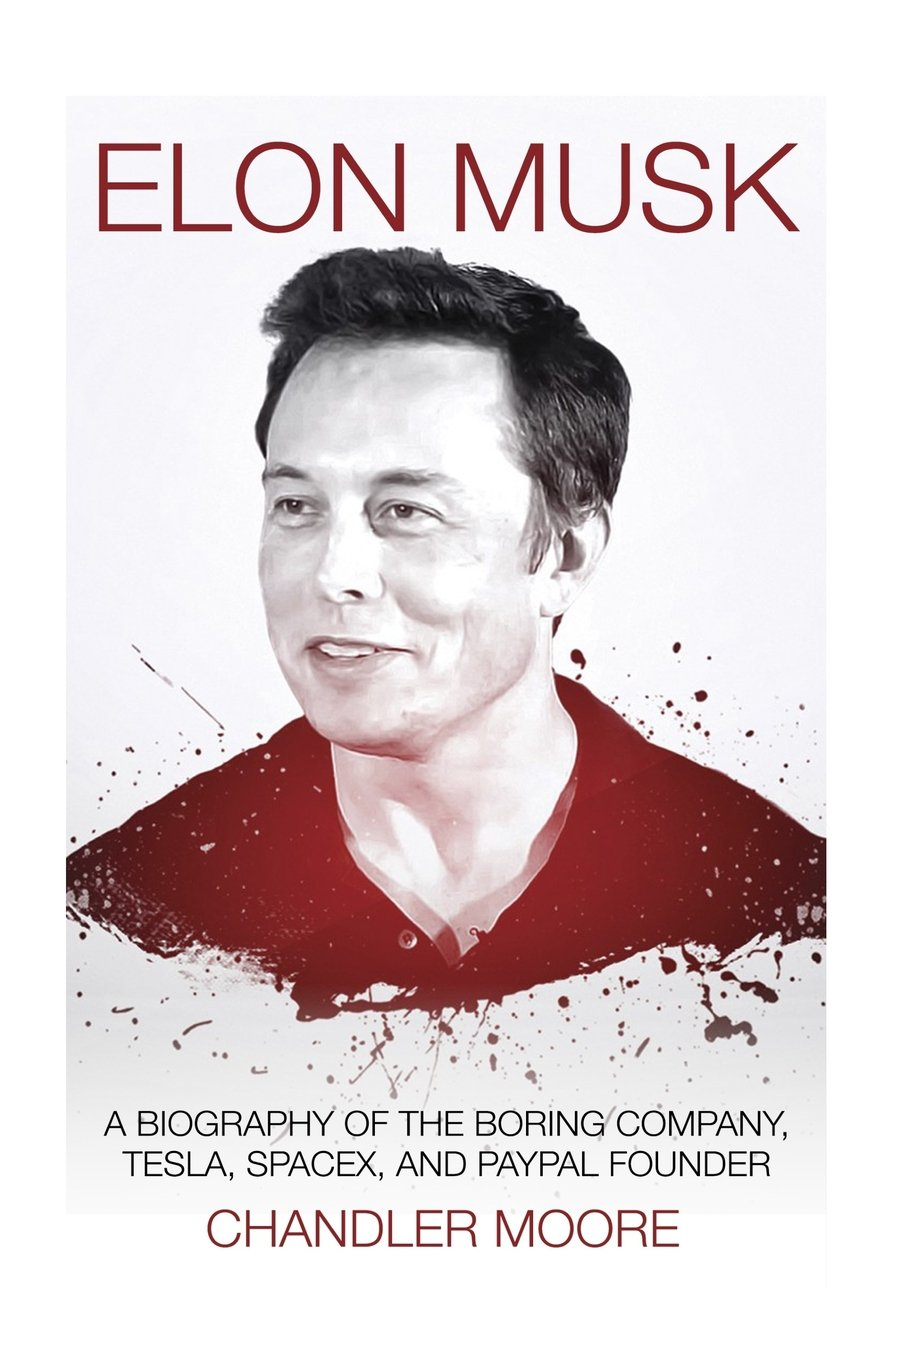 Download Elon Musk: A Biography of The Boring Company, Tesla, SpaceX, and PayPal Founder pdf epub